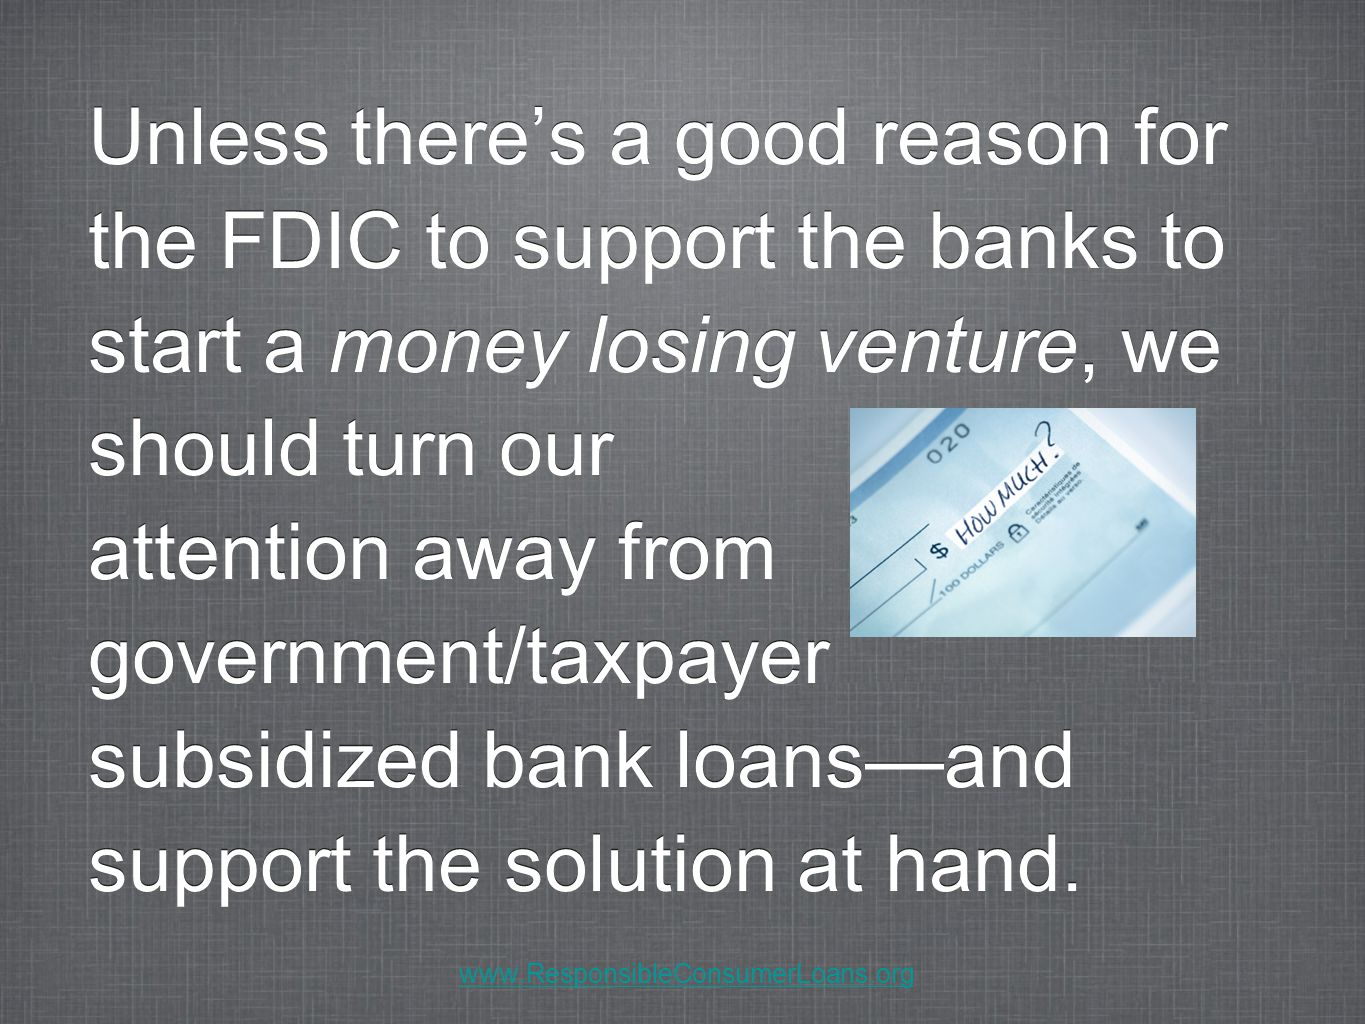 Unless there's a good reason for the FDIC to support the banks to start a money losing venture, we should turn our attention away from government/taxpayer subsidized bank loans—and support the solution at hand.